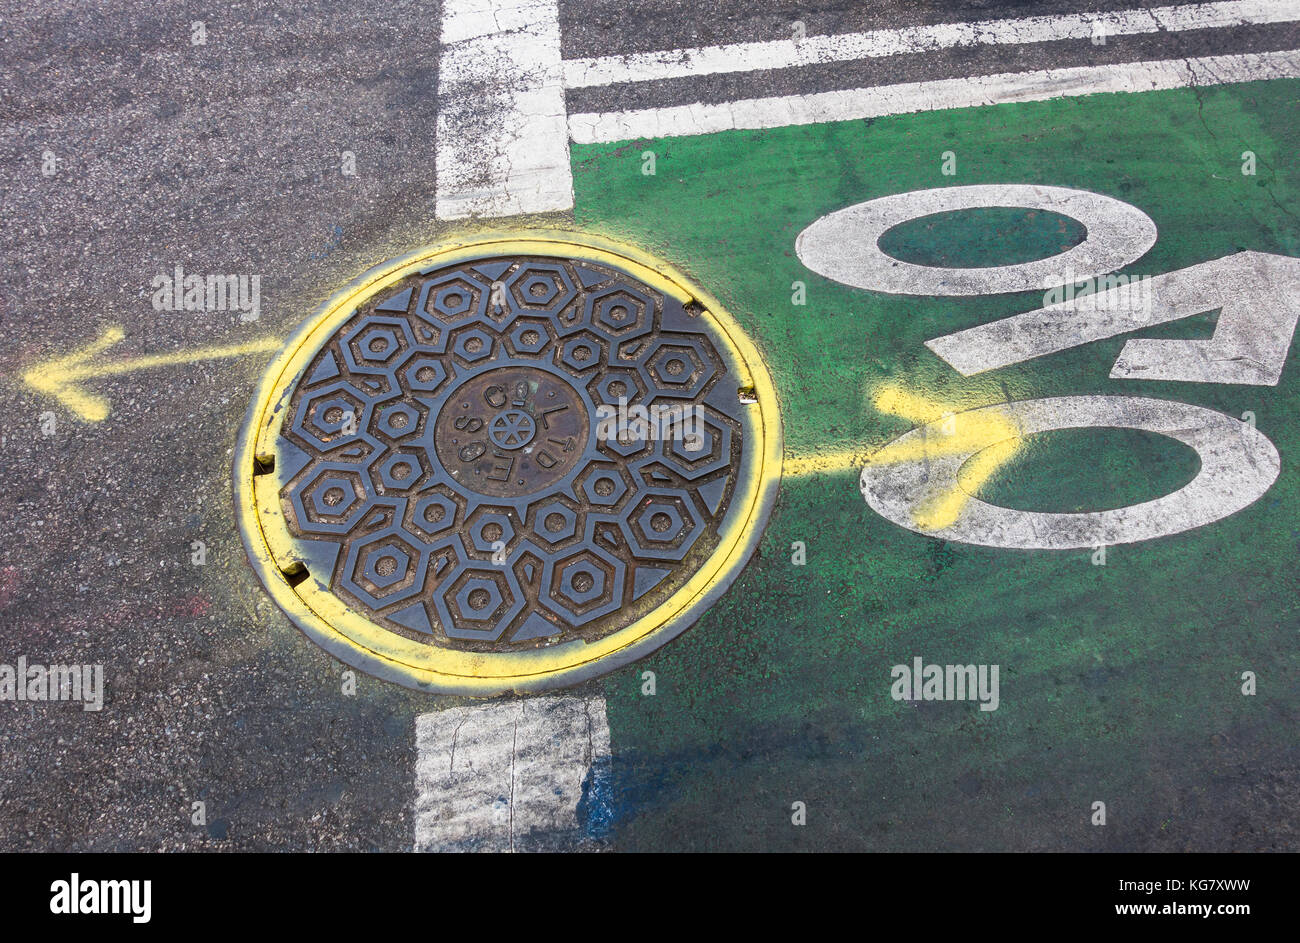 Sewer cover on New York City bike lane - Stock Image